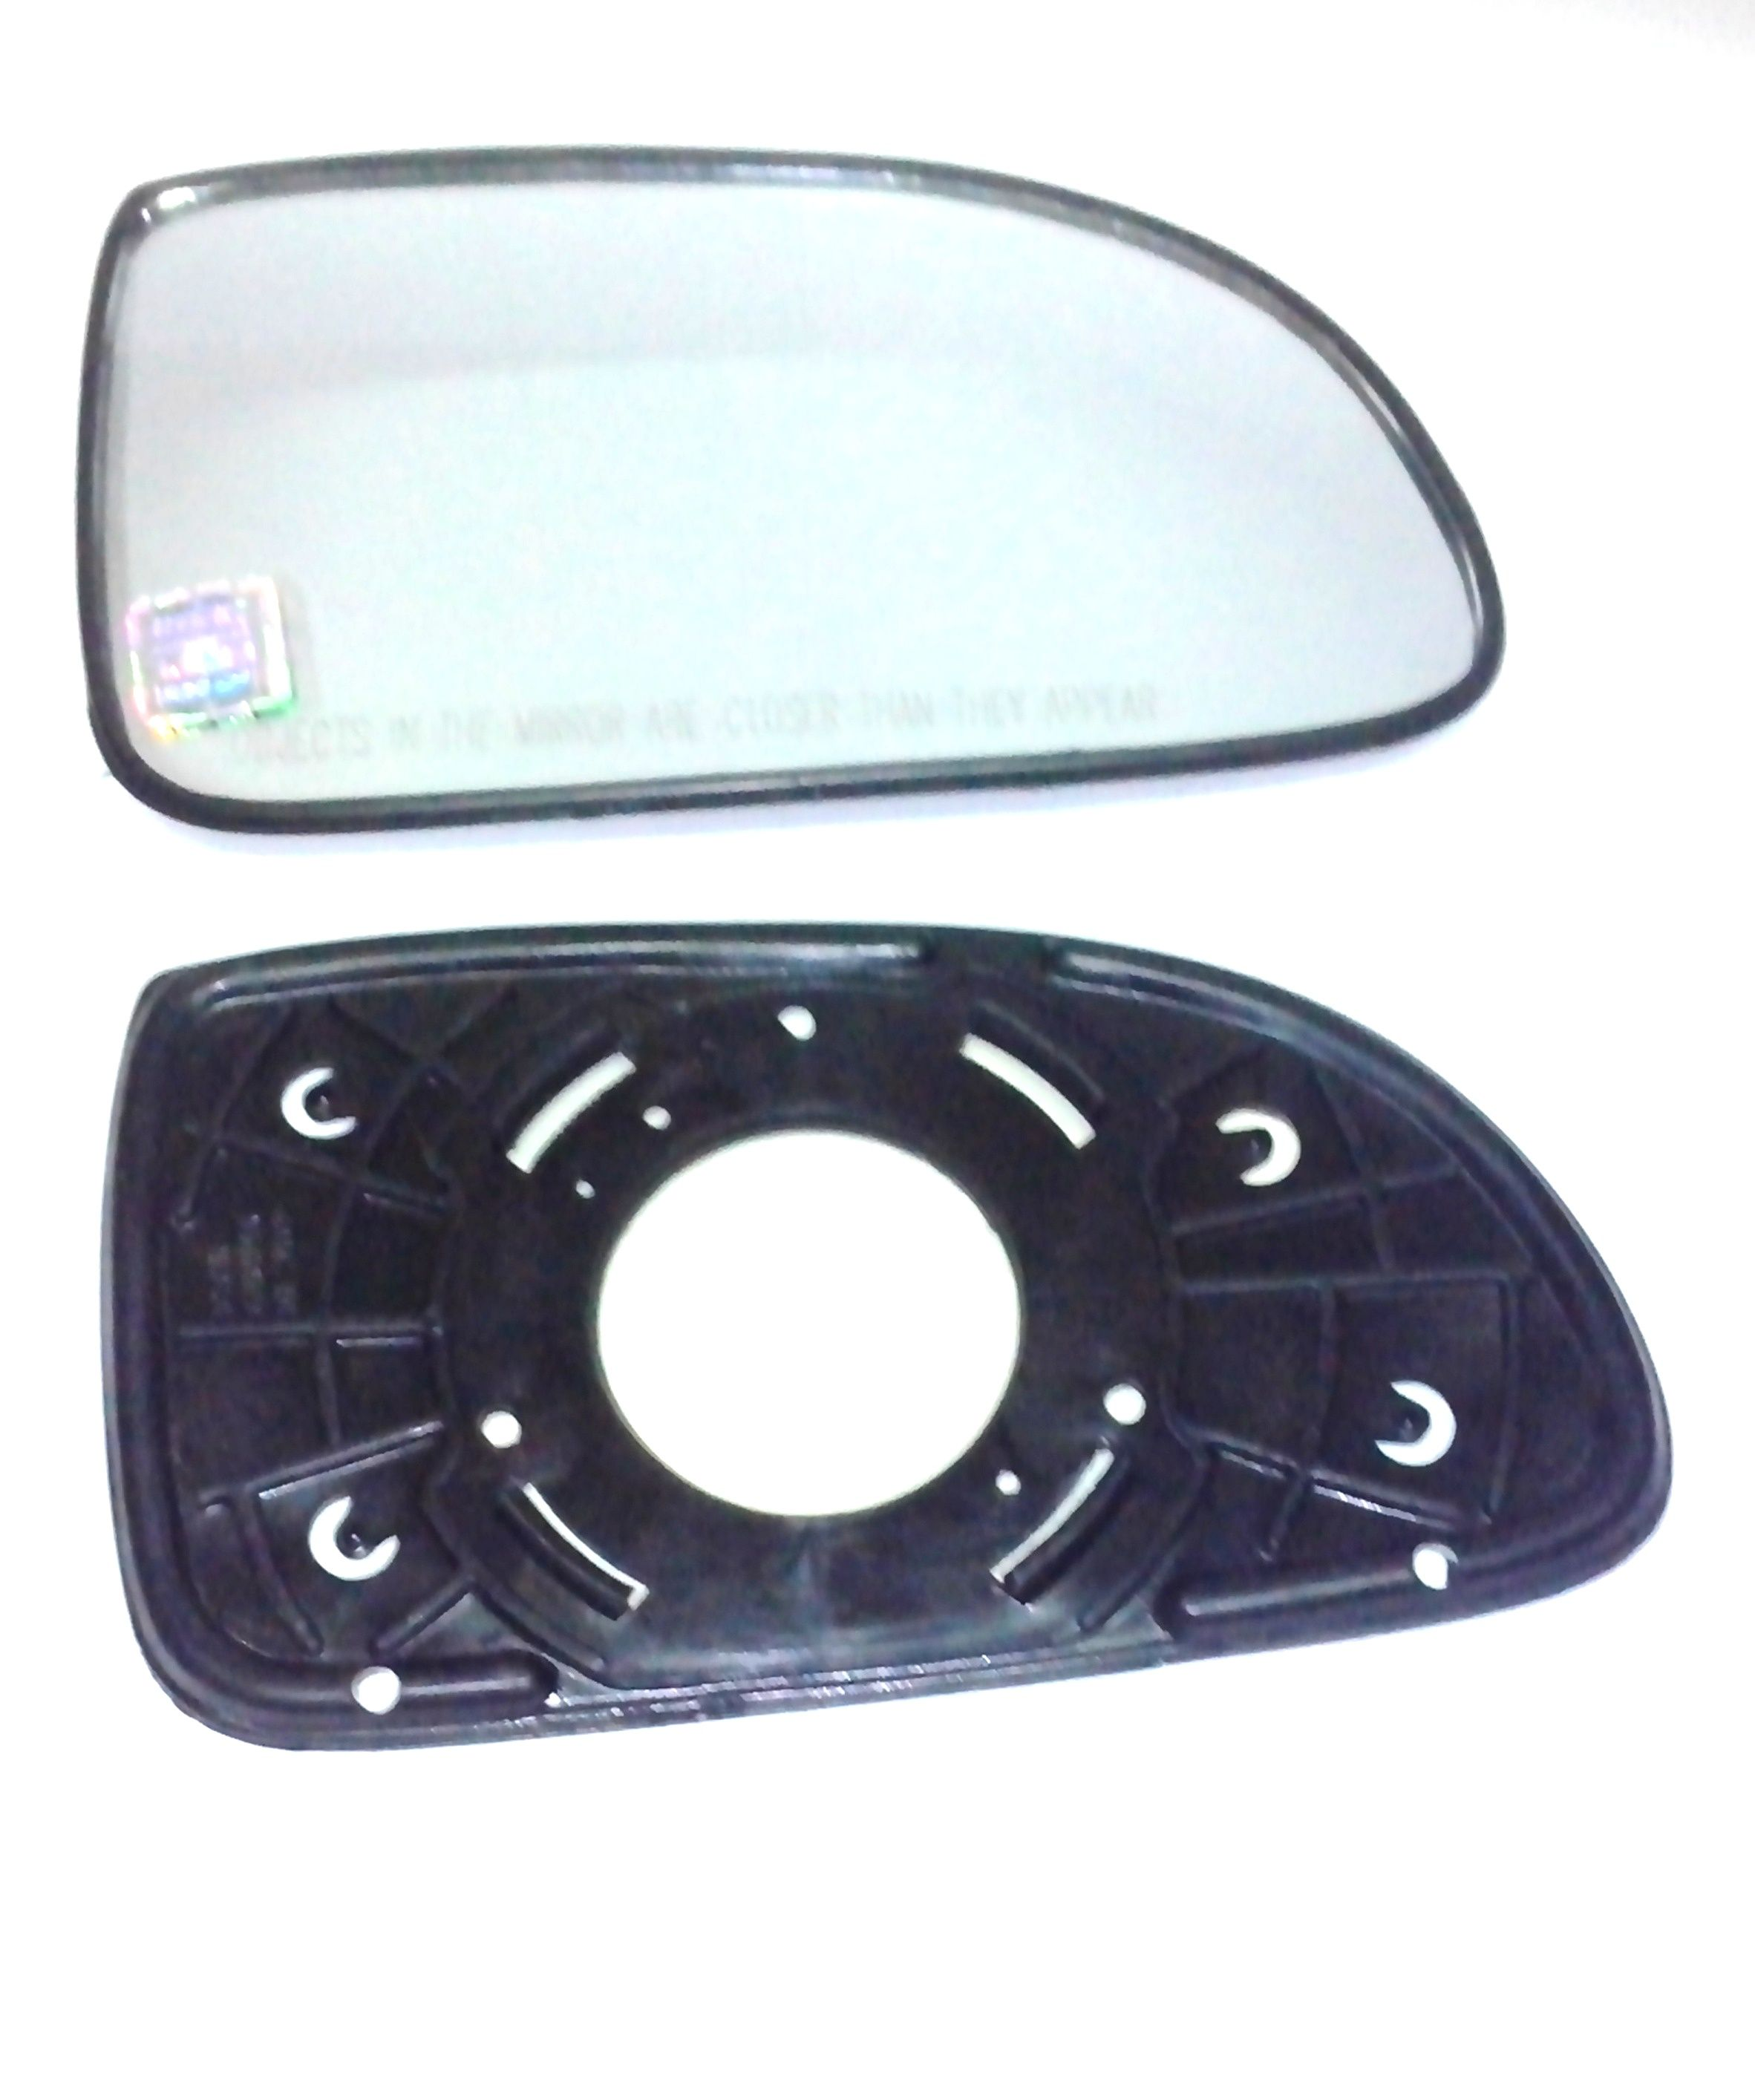 MANTRA-CONVEX MIRROR PLATES (SUB MIRROR PLATES) FOR TOYOTA ETIOS LEFT SIDE